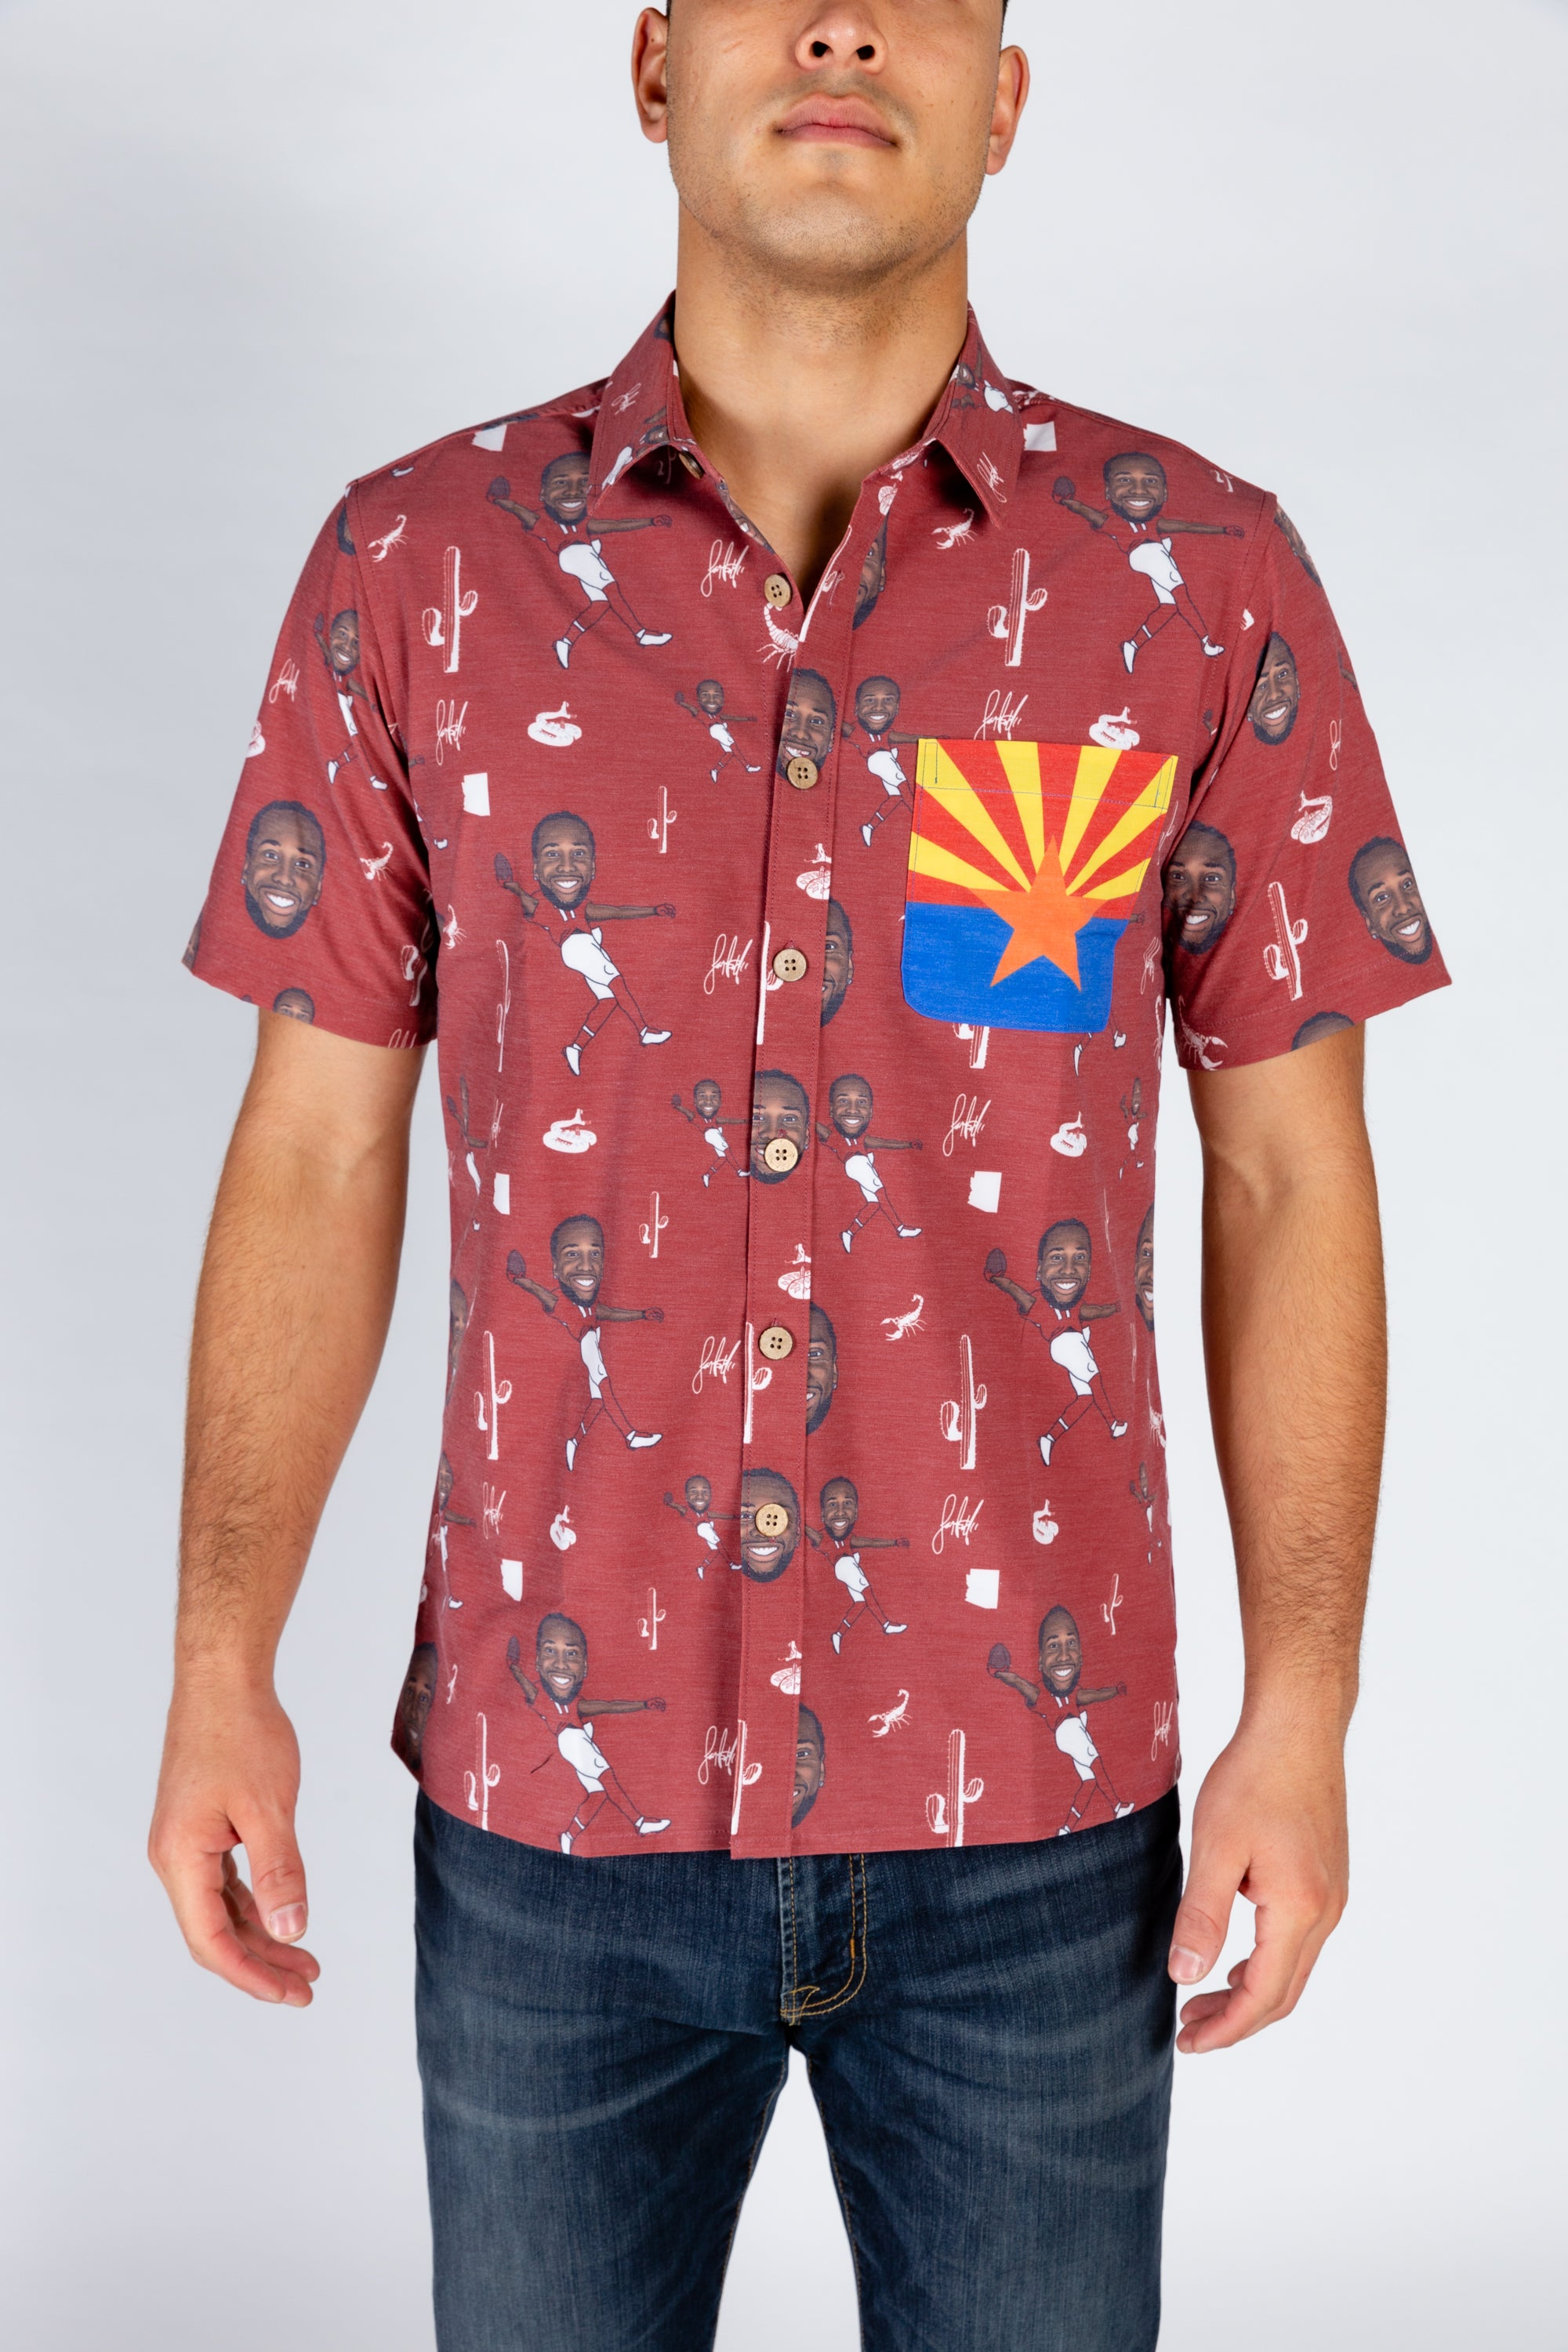 The Larry Fitzgerald | Red Hawaiian Shirt